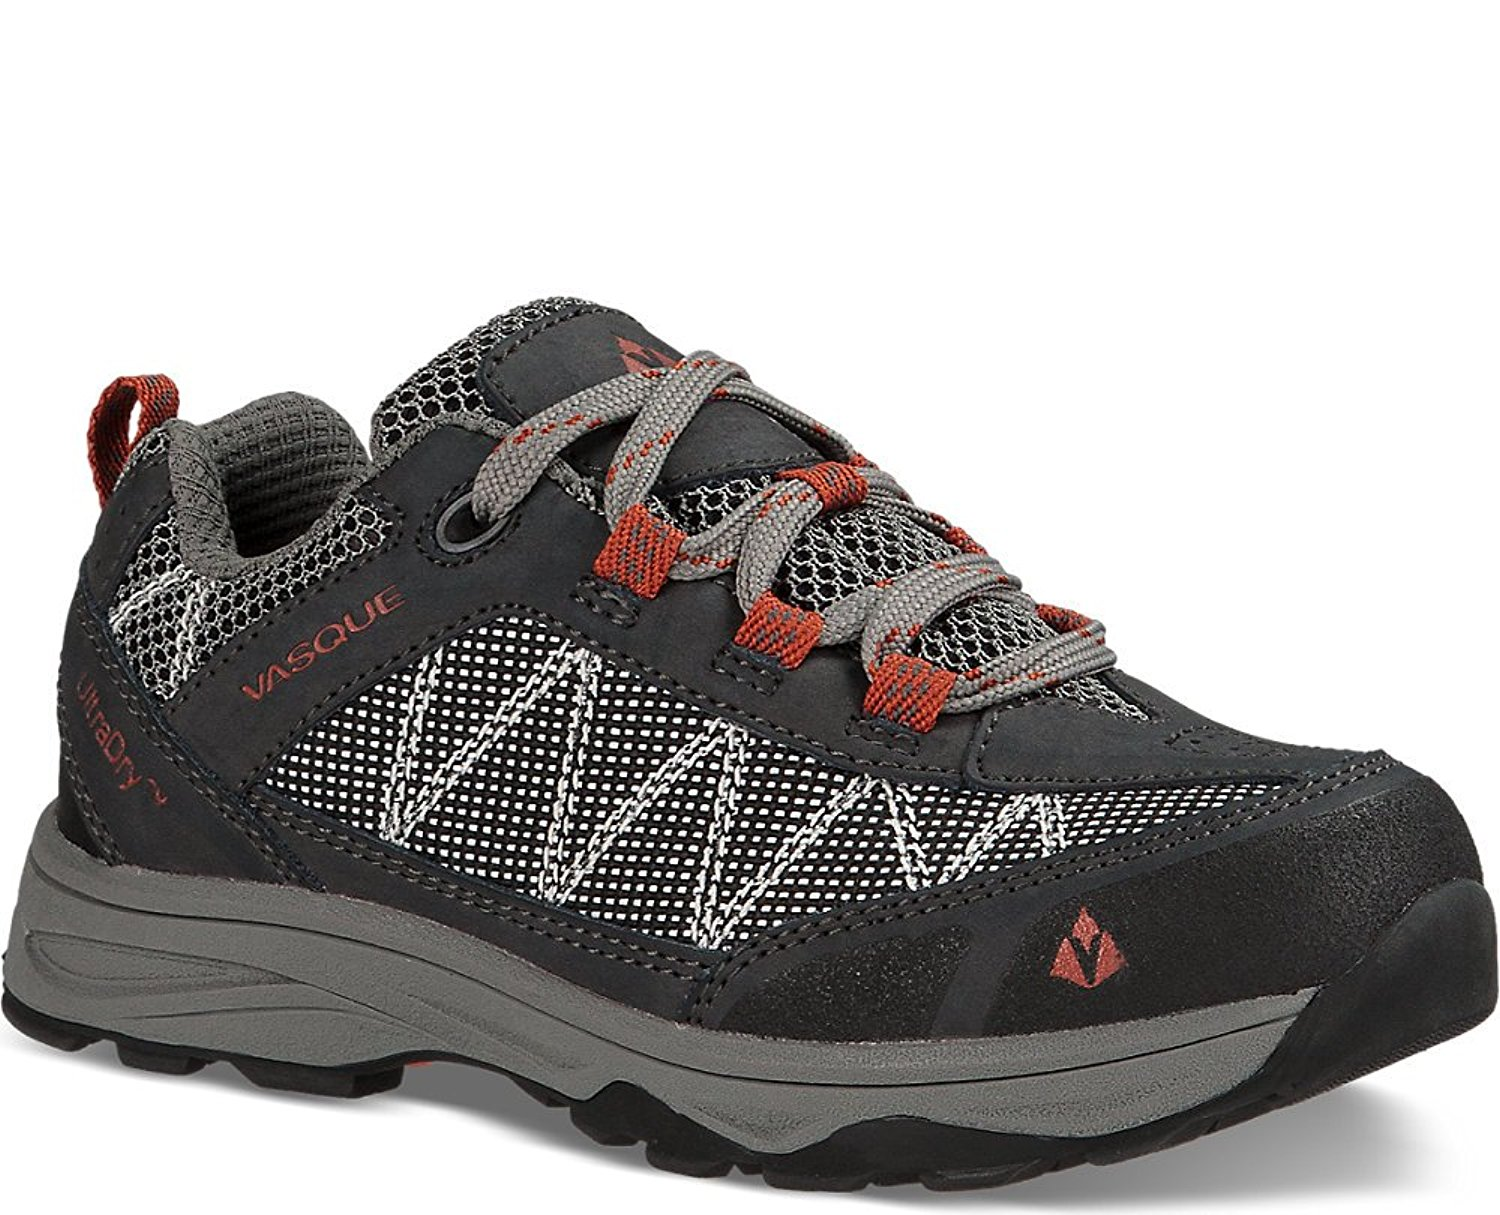 Vasque Kids Monolith Low UltraDry Hiking Shoes /& Knit Cap Bundle